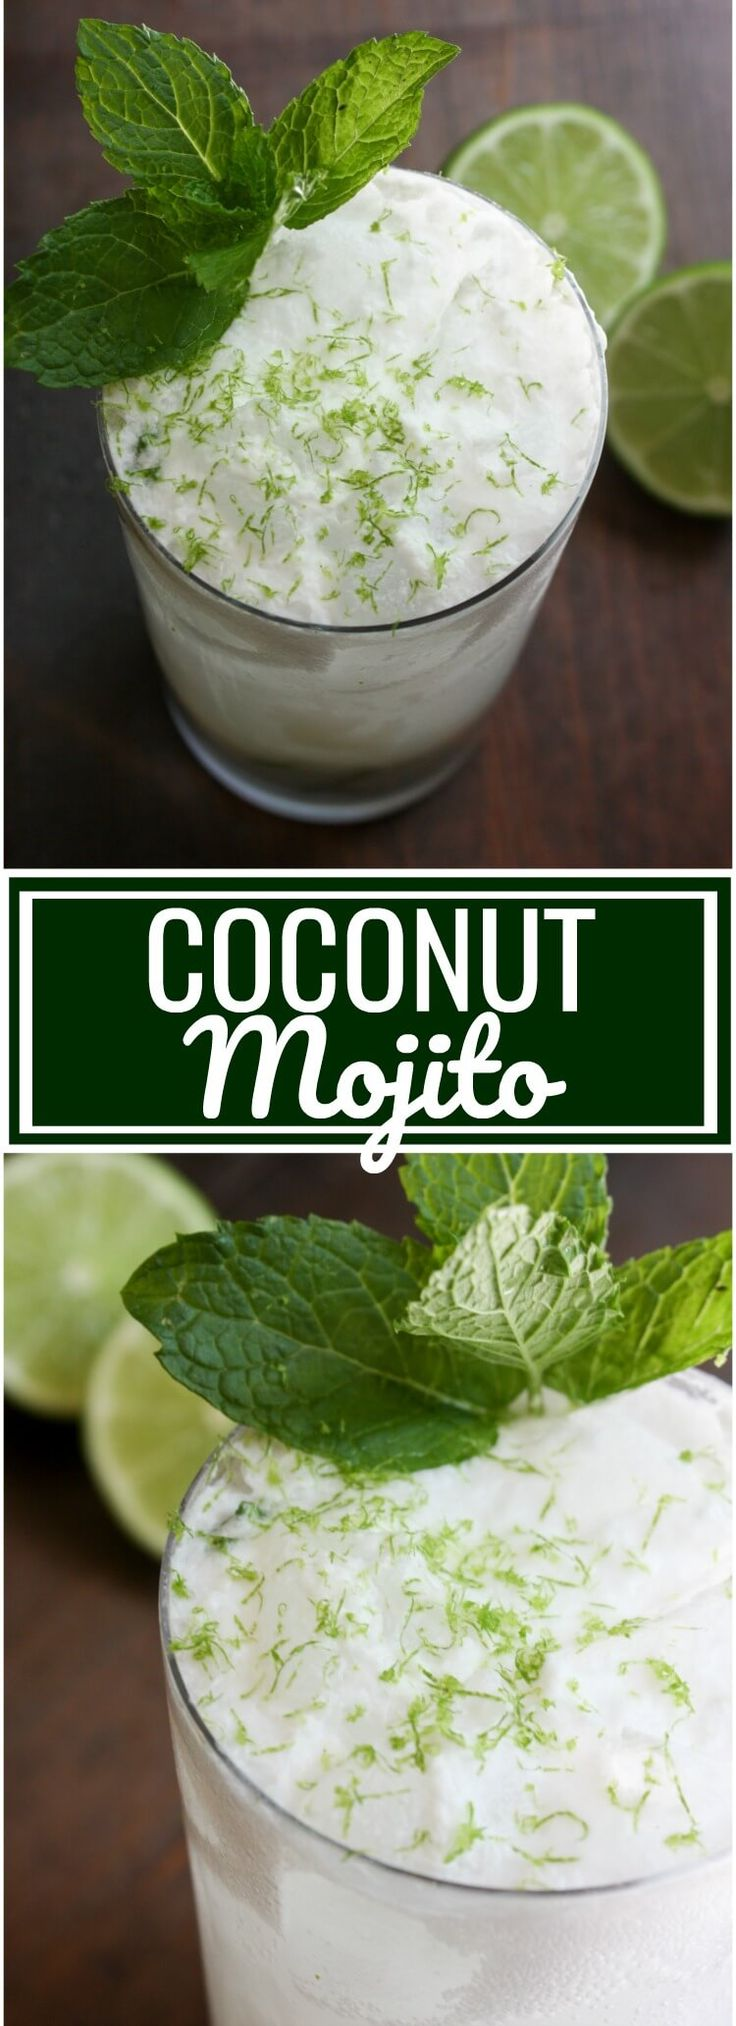 It is Mojito Monday and today's Mojito is this Coconut Mojito made with fresh mint, lime and cream of coconut topped out with club soda.